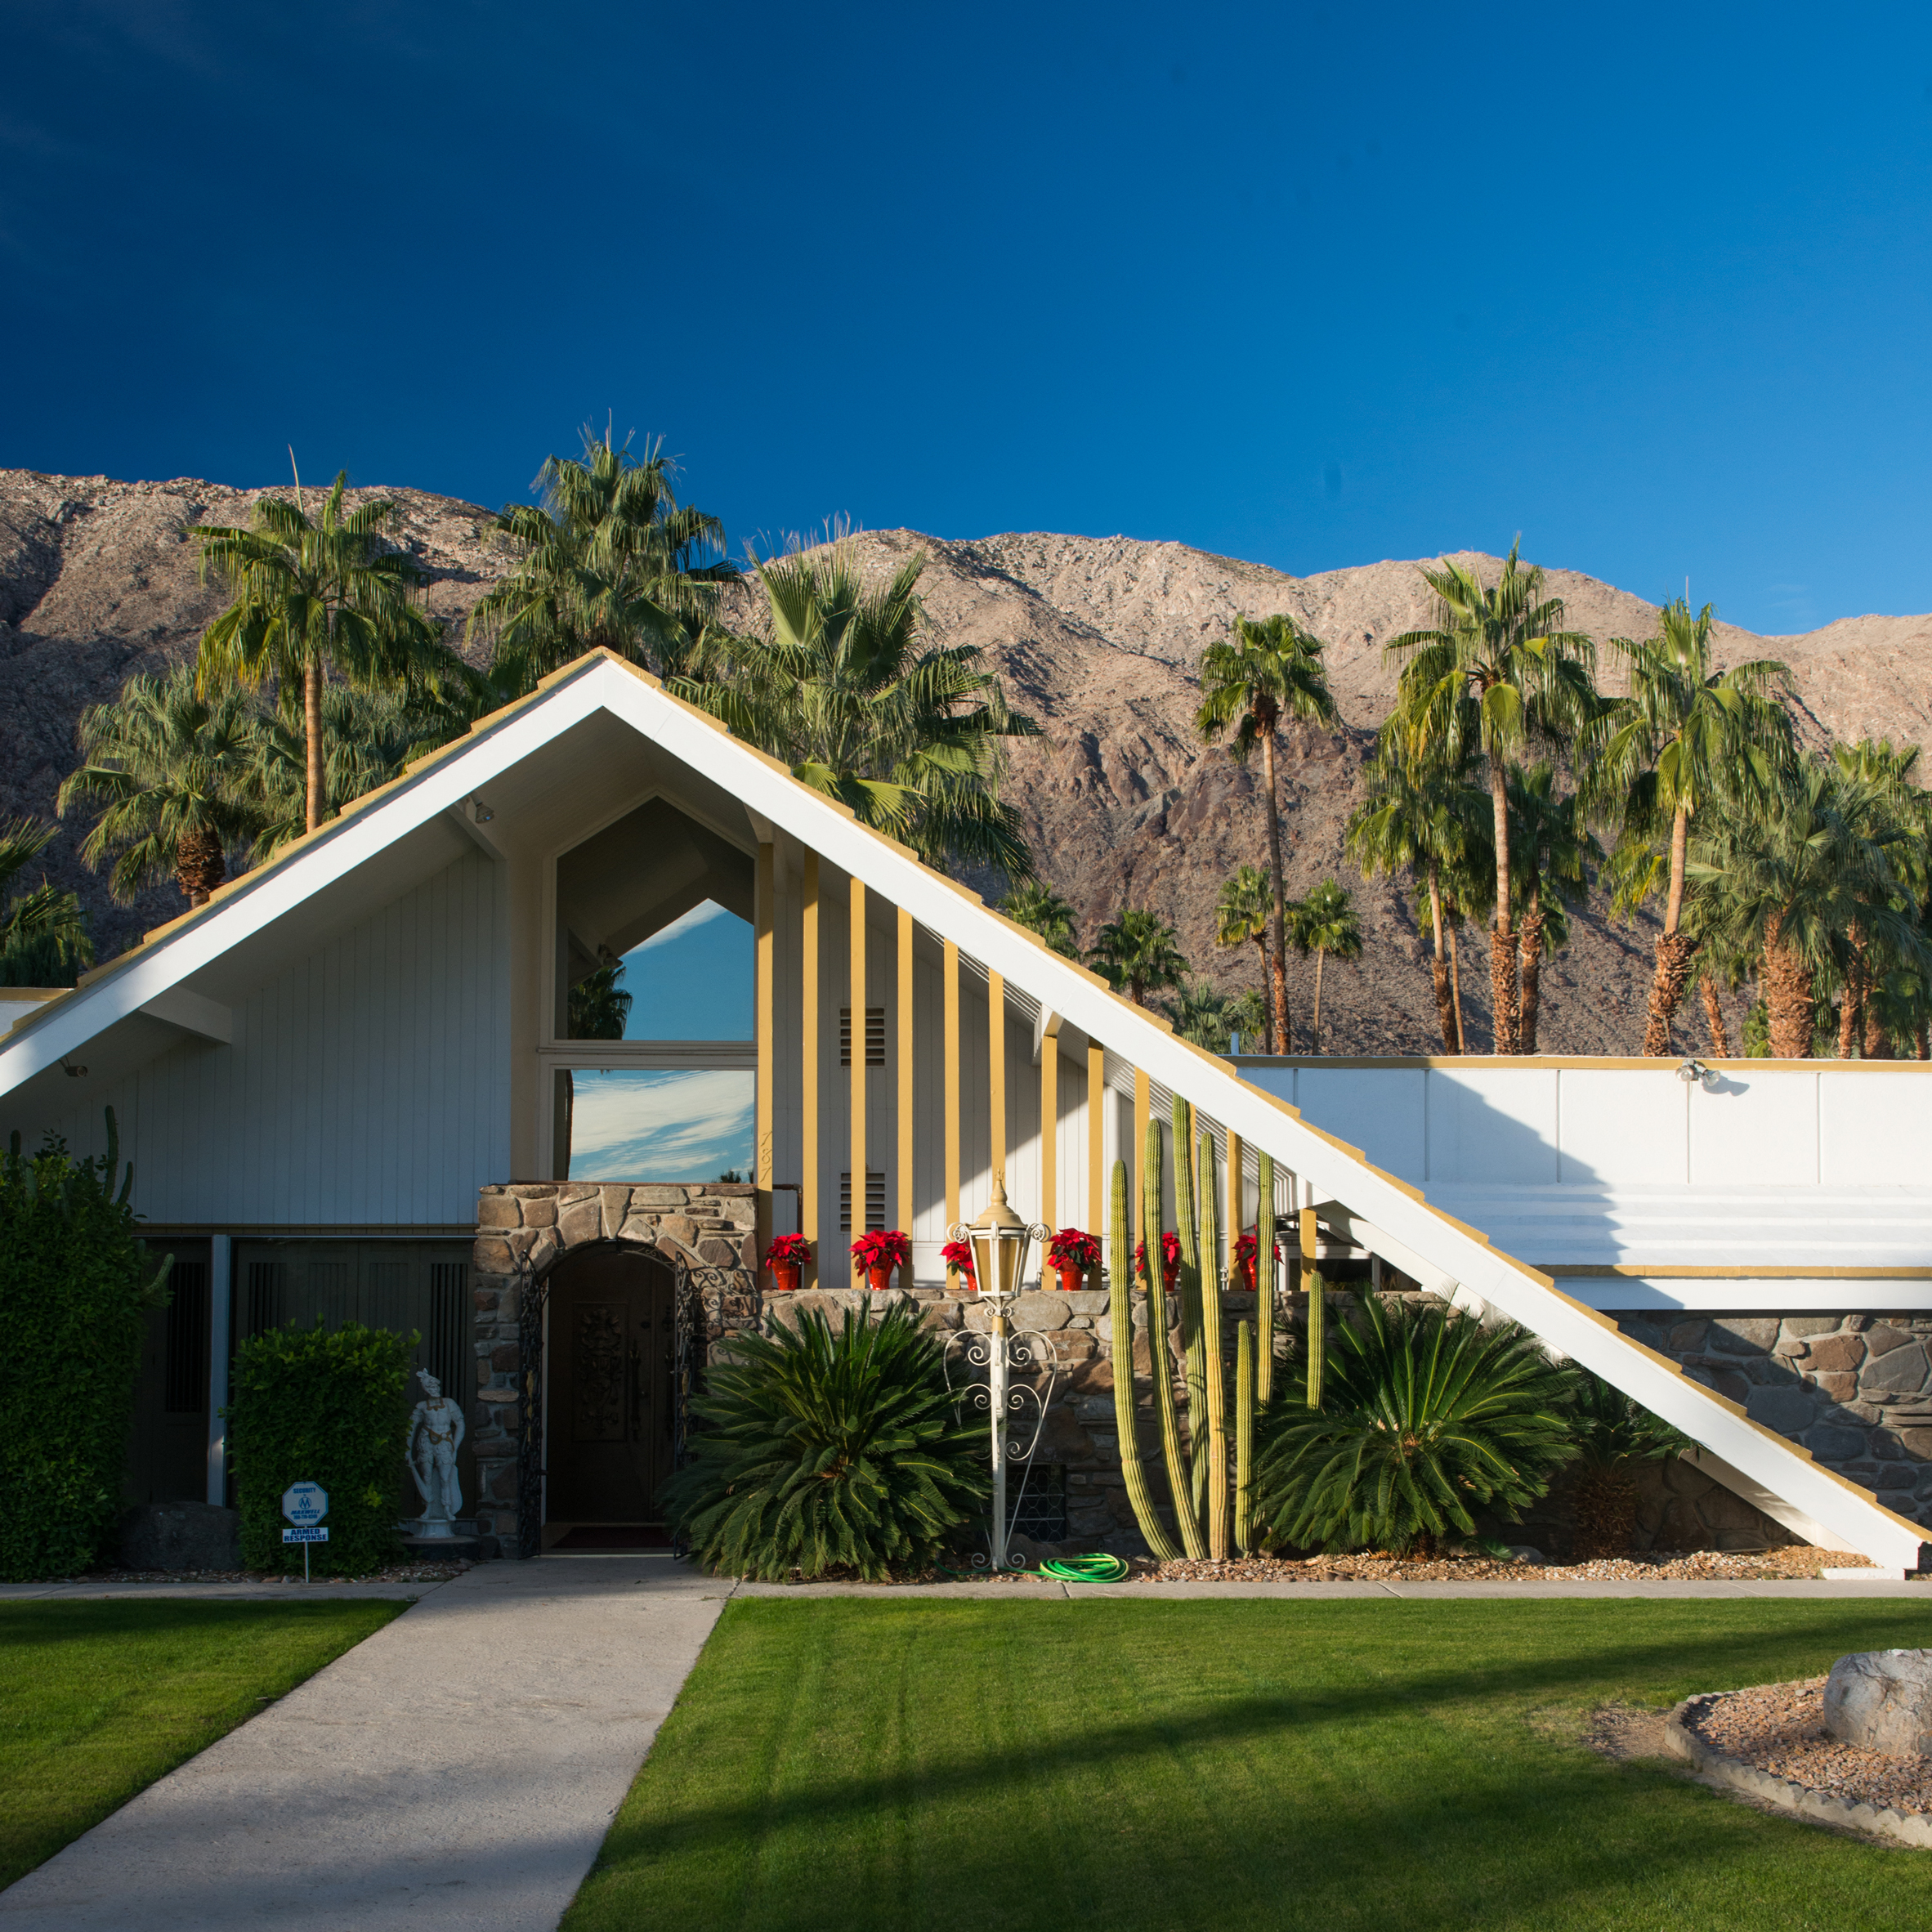 A-frame roofs typify Charles DuBois' Swiss Miss houses in